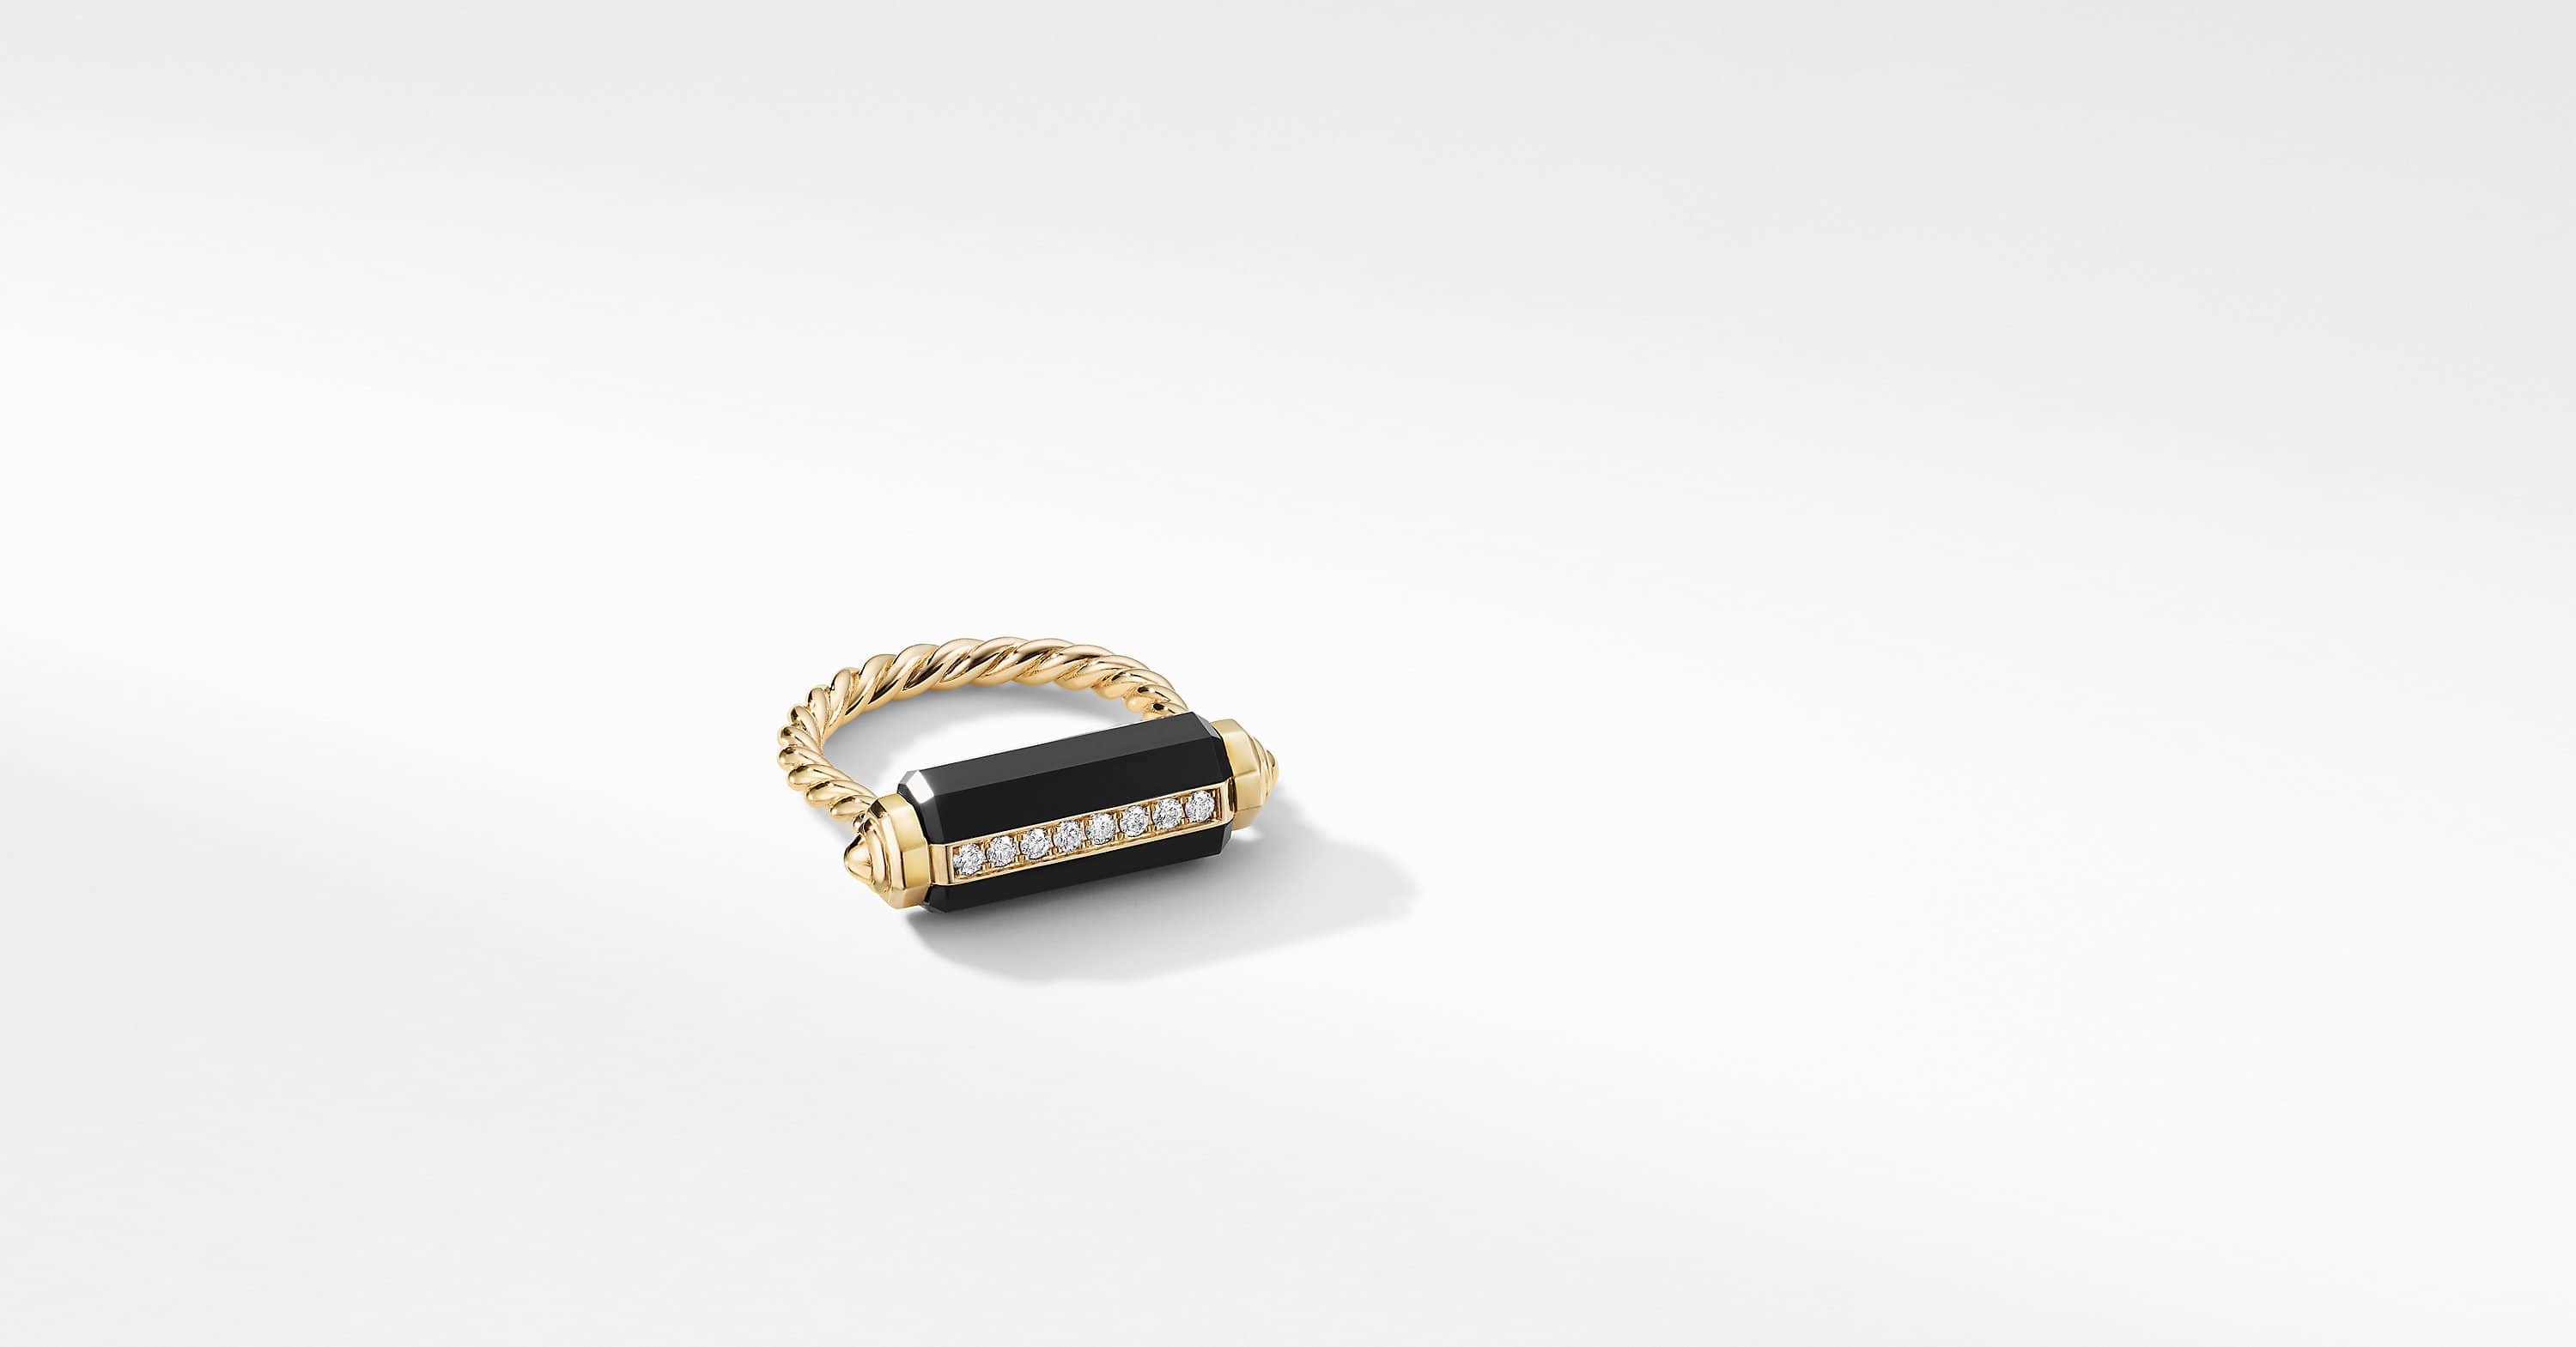 Lexington Barrel Ring in 18K Yellow Gold with Diamonds